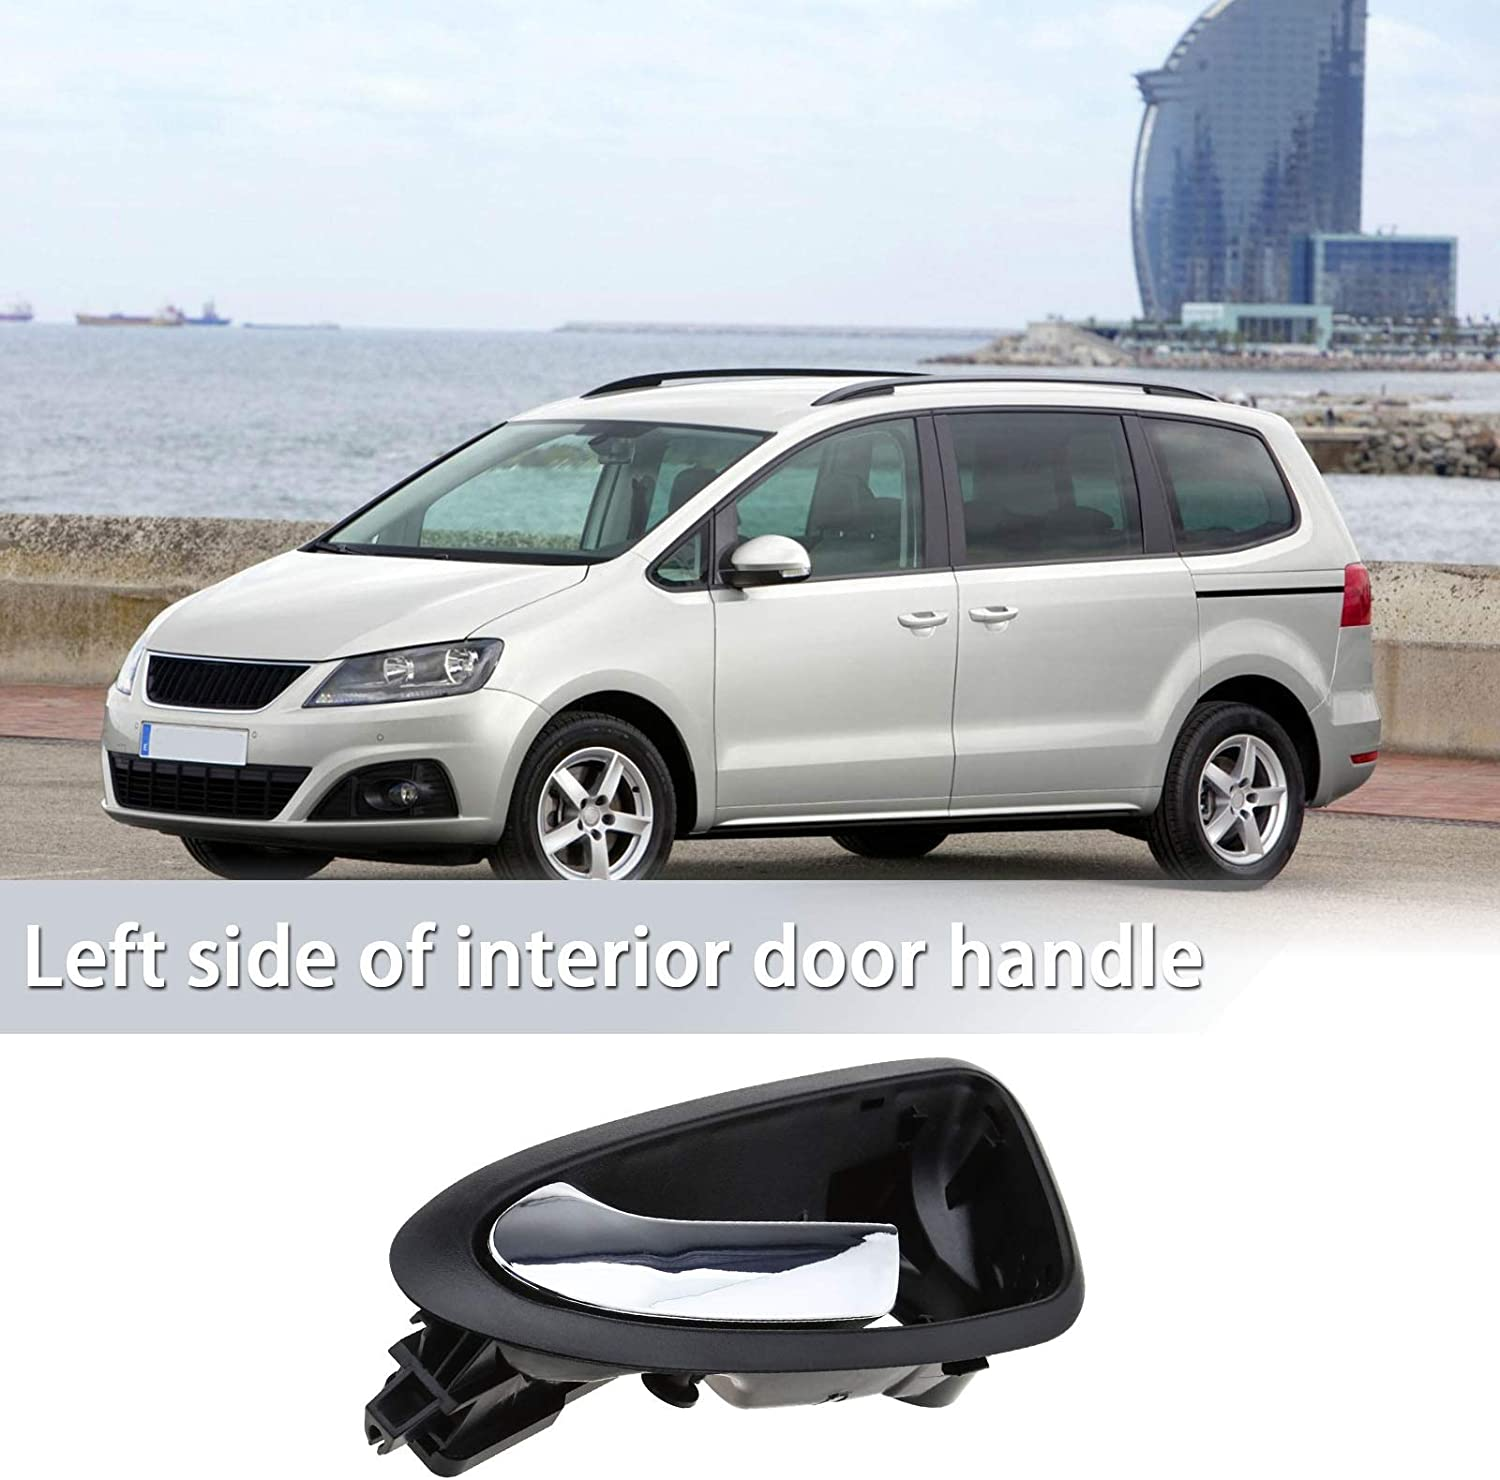 Car Auto Front Interior Inner Door Handles for Left /& Right Inside Compatible with Ibiza 2009-2012 6J1837113A